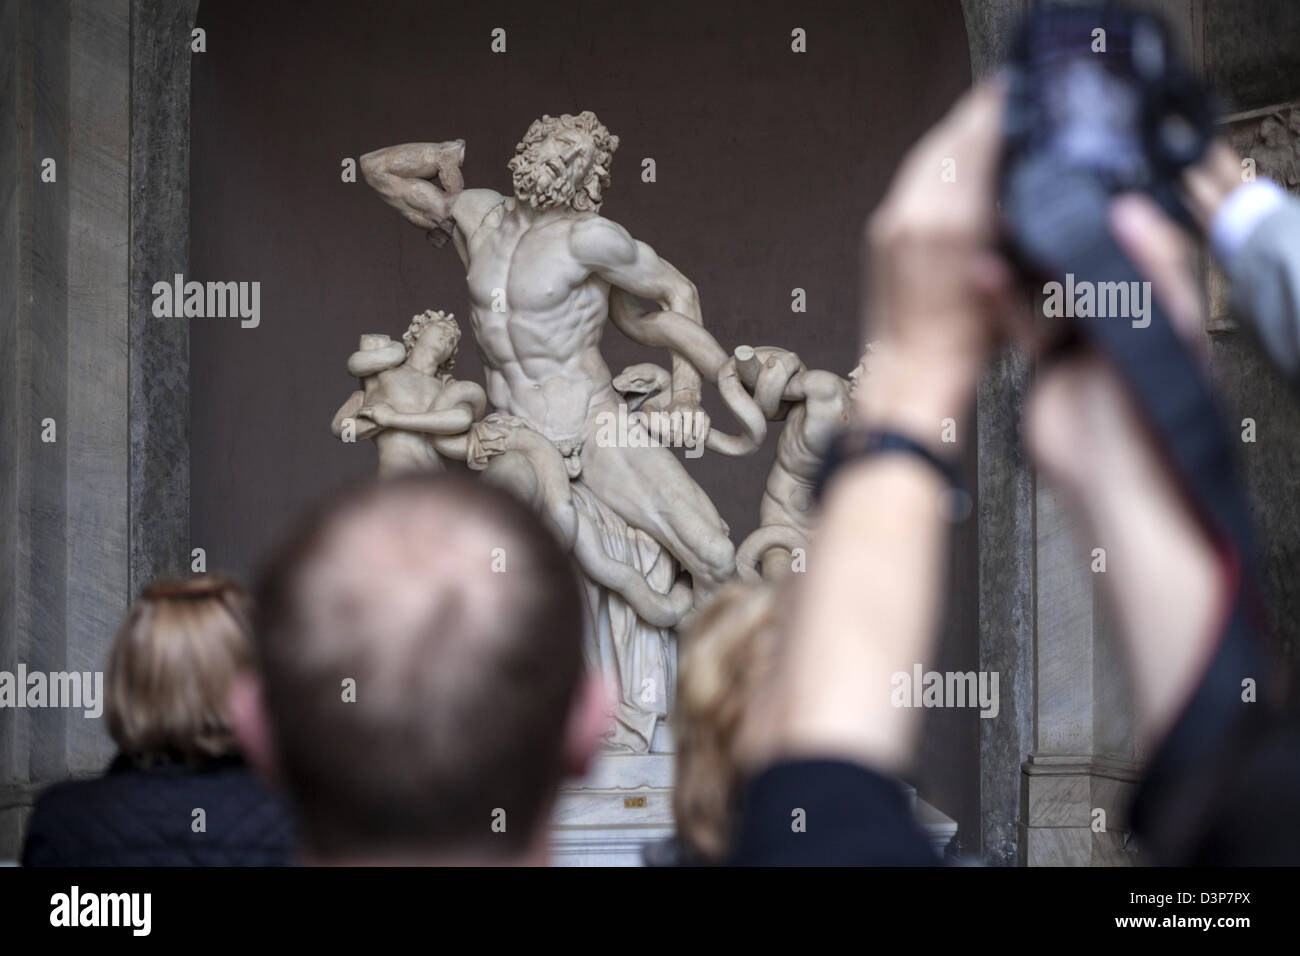 Laocoon and his sons a first century BC marble sculpture on display in the Vatican Museum, Vatican City, Rome, Italy Stock Photo